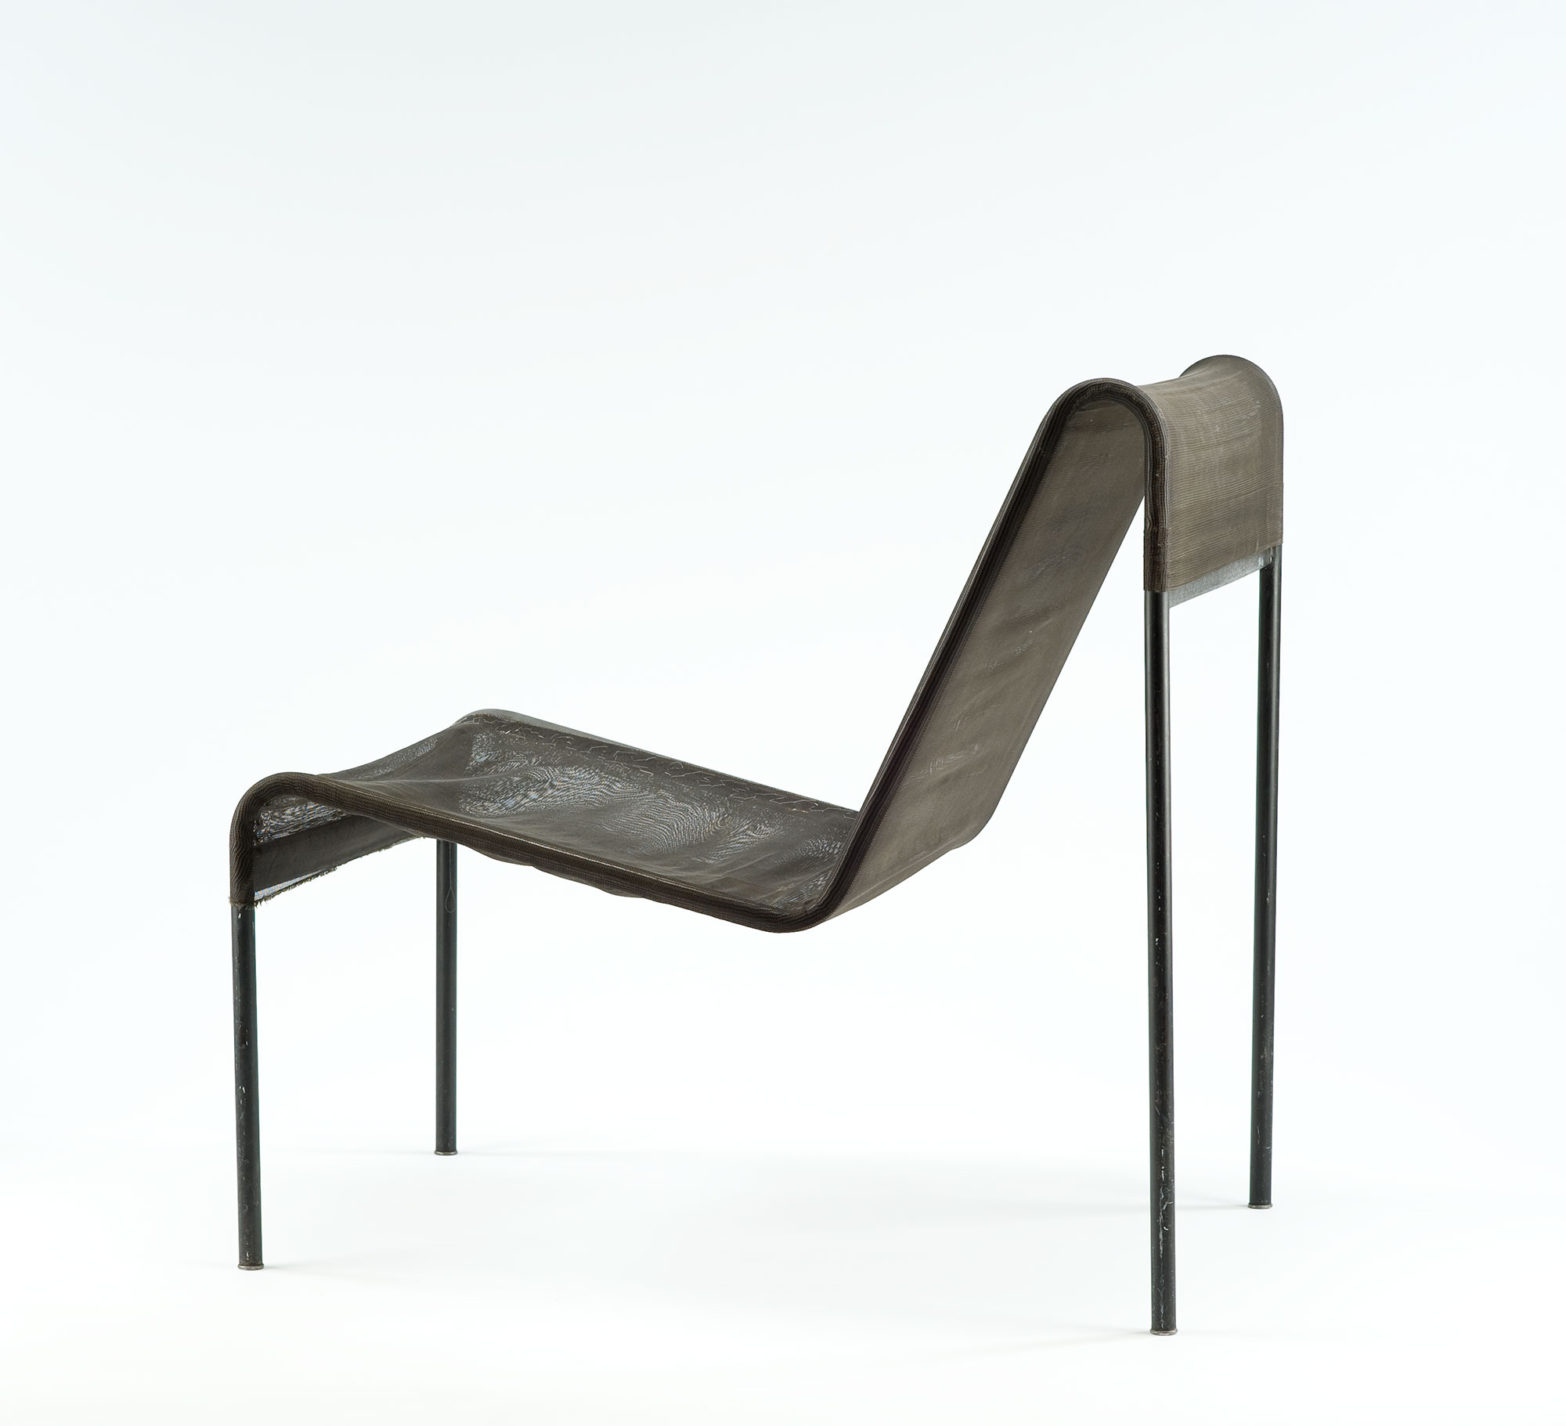 Black chair with nylon mesh upholstery stretched between the two continuous bars of the tubular-steel frame.